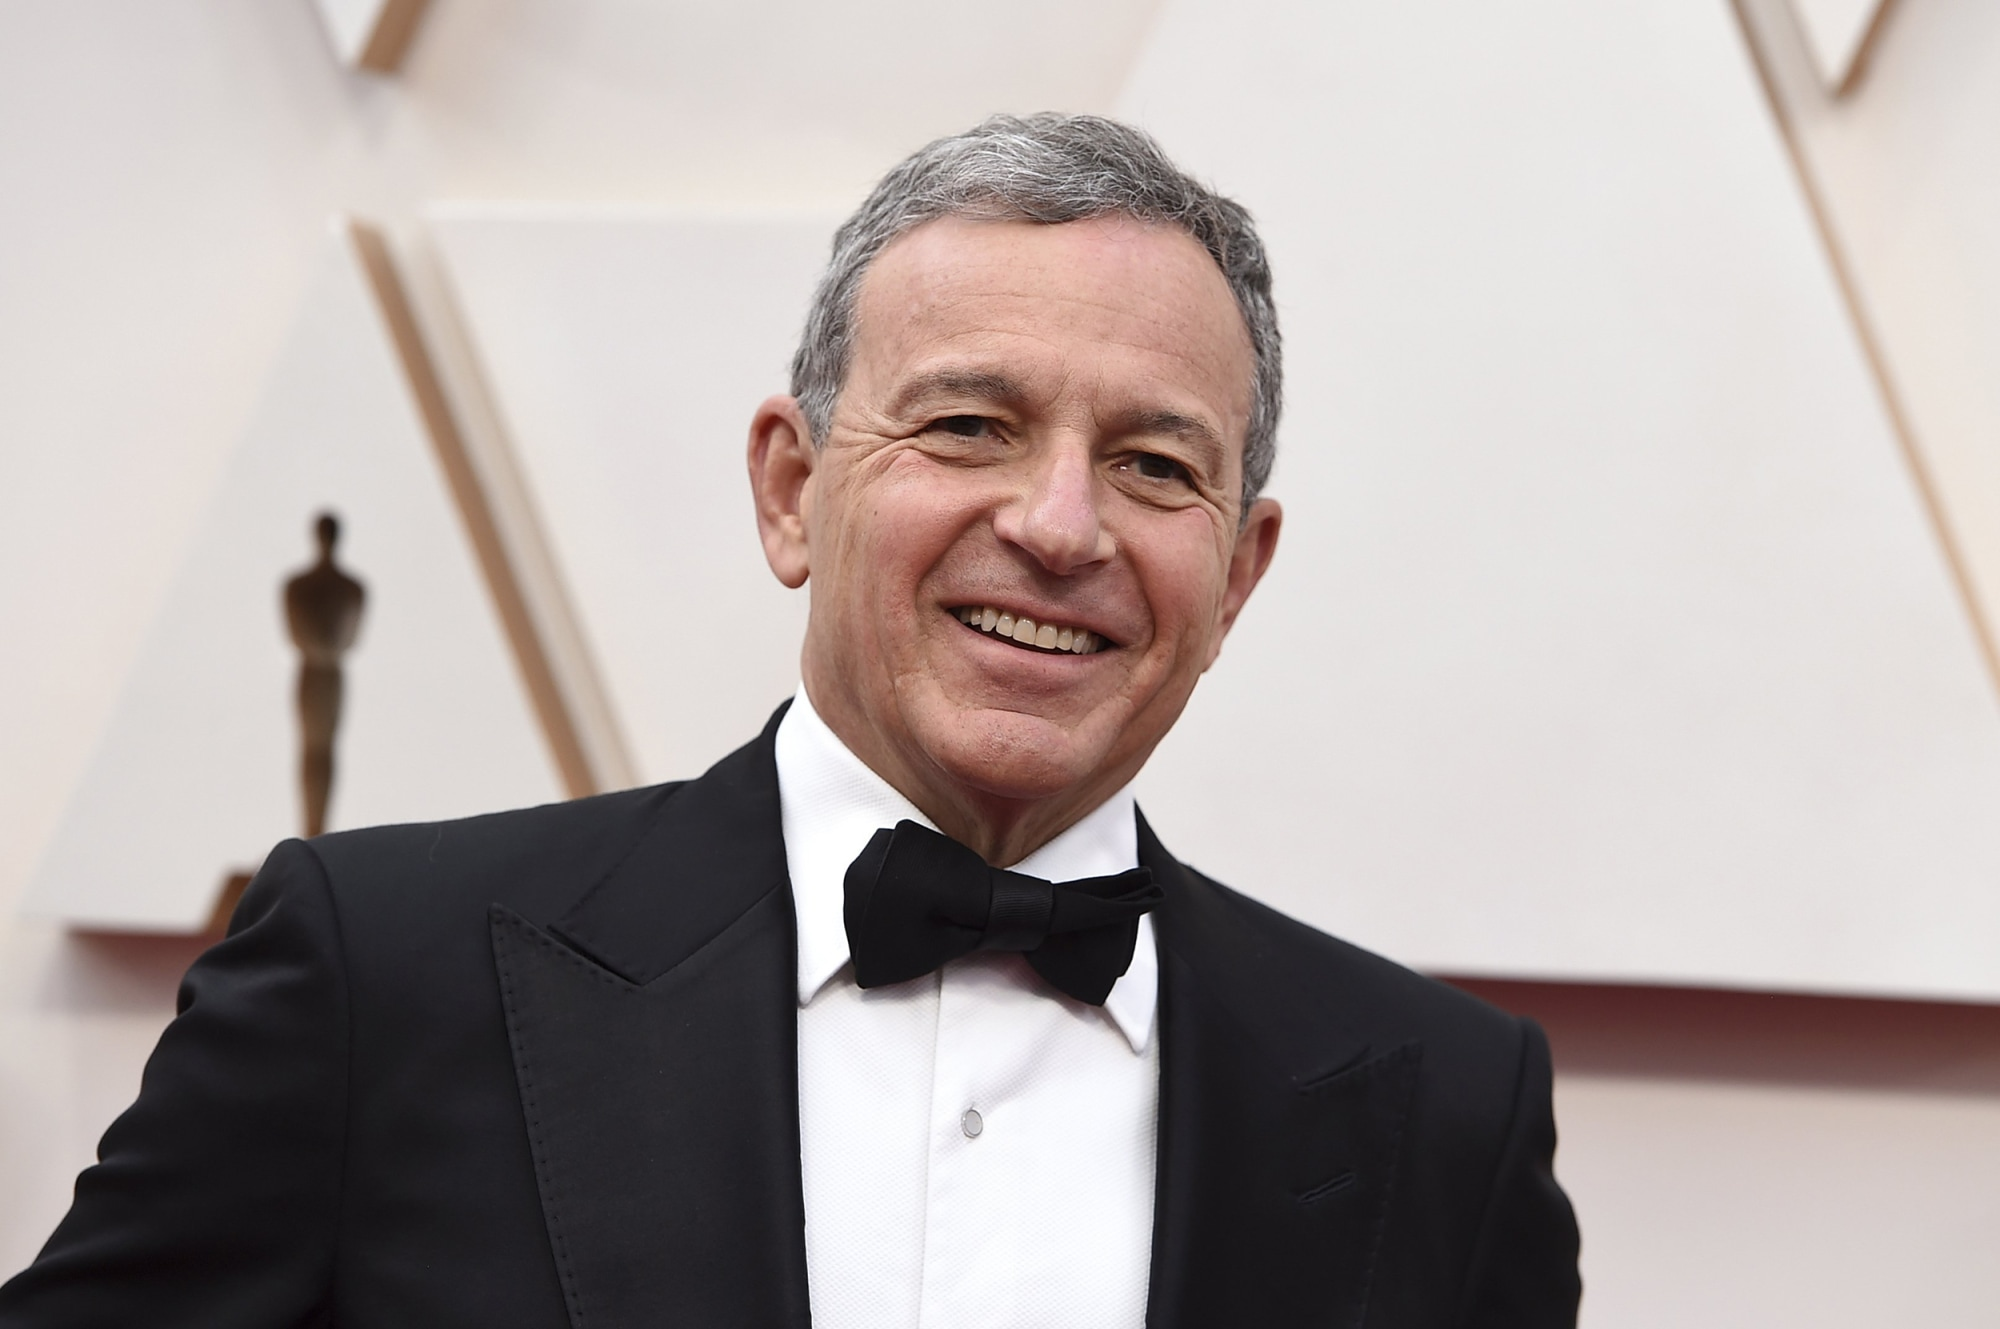 Bob Iger steps down as Disney CEO, replaced by Bob Chapek